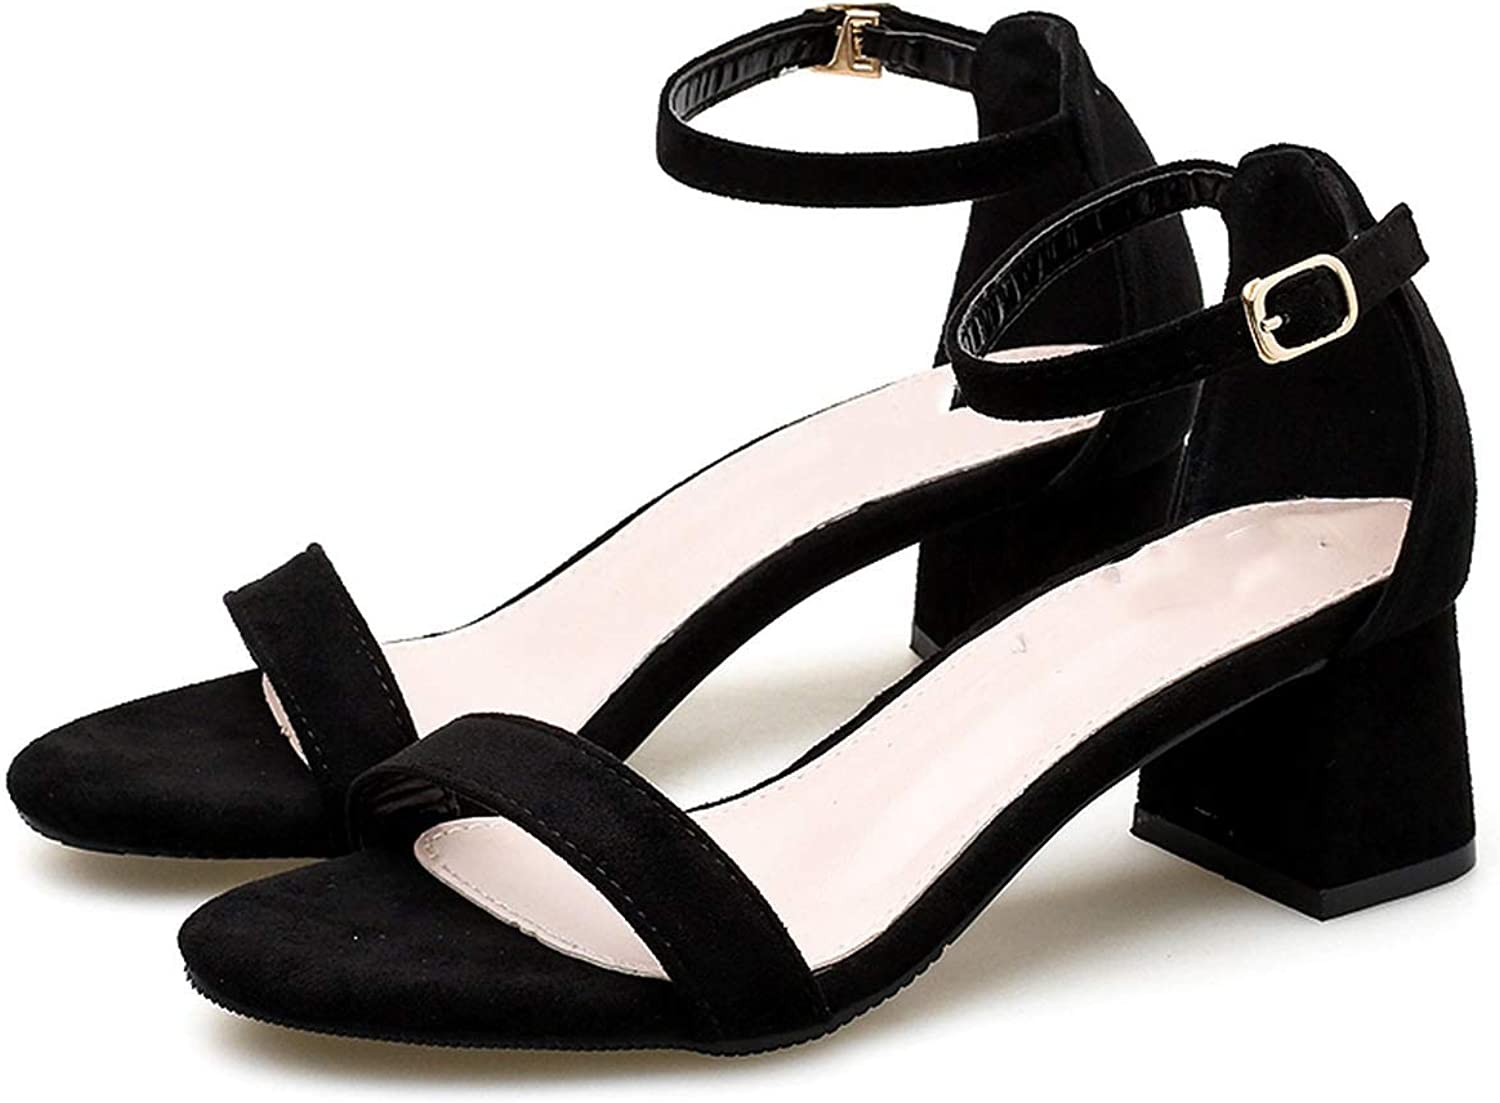 Summer Hollow Women Sandals Casual Mid Thick Heel Ankle Strap Sandalias women Fashion Sandal Female Black Party shoes 42